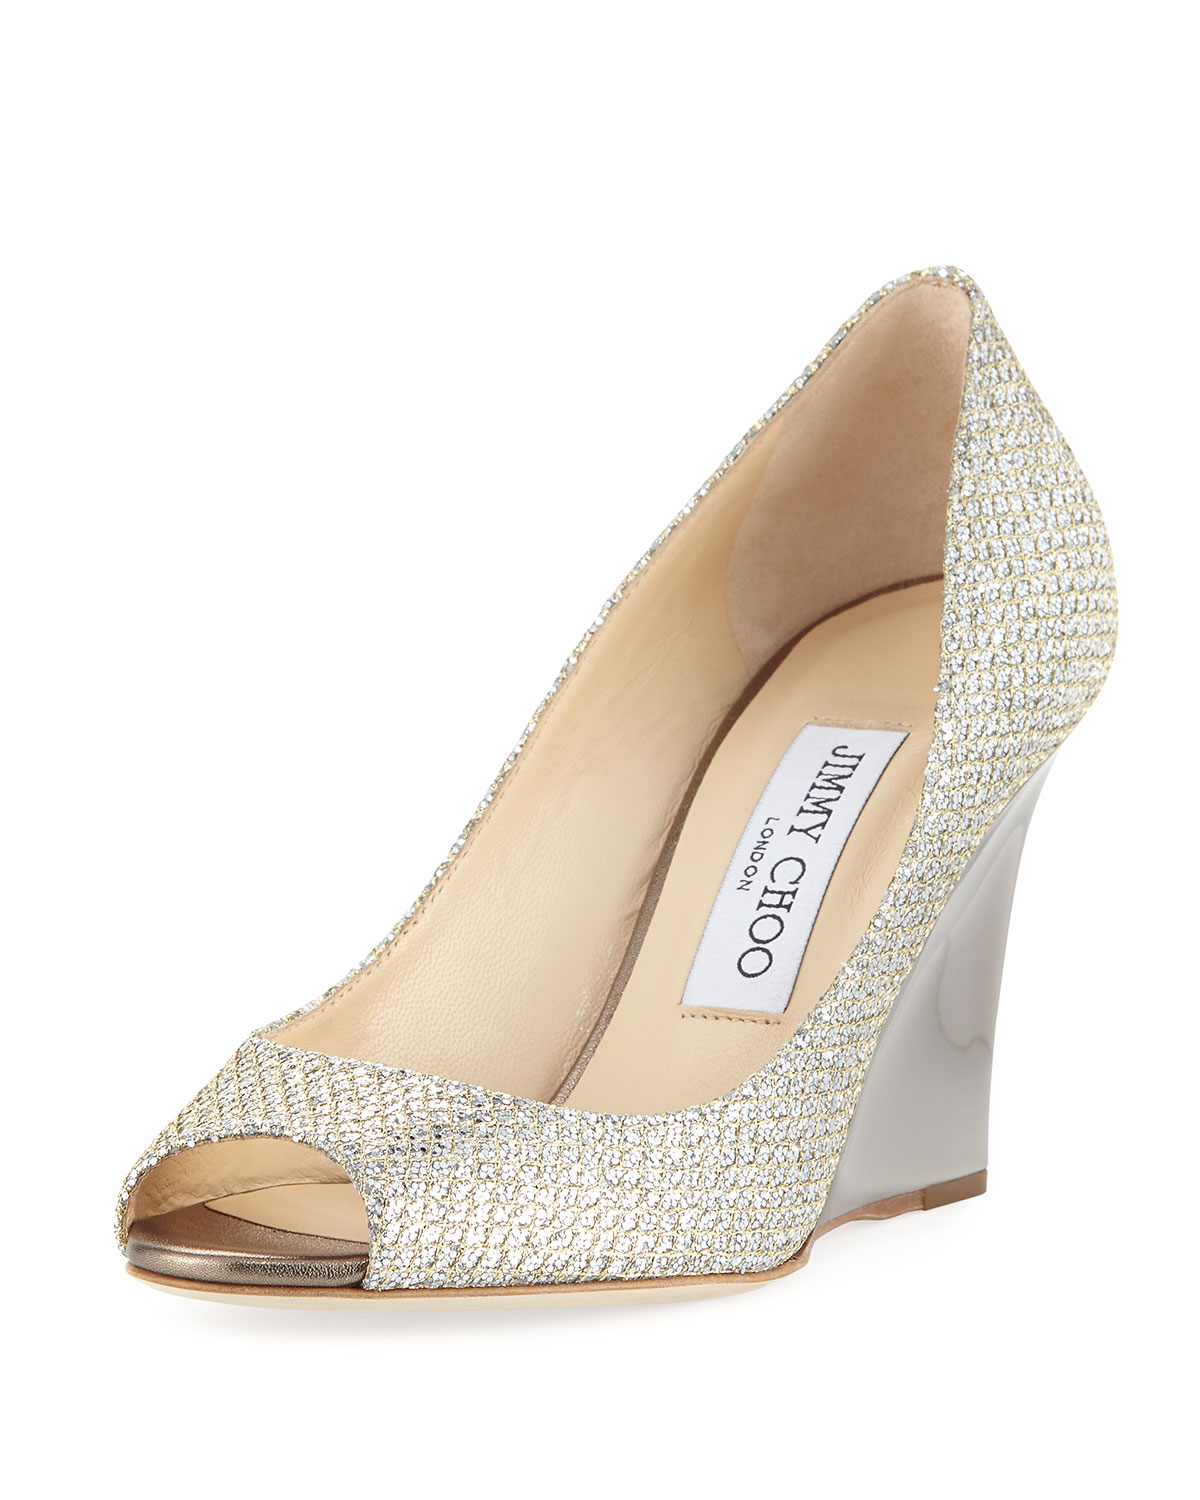 516c011191d Jimmy Choo Baxen Glitter Peep-Toe Wedge Pump